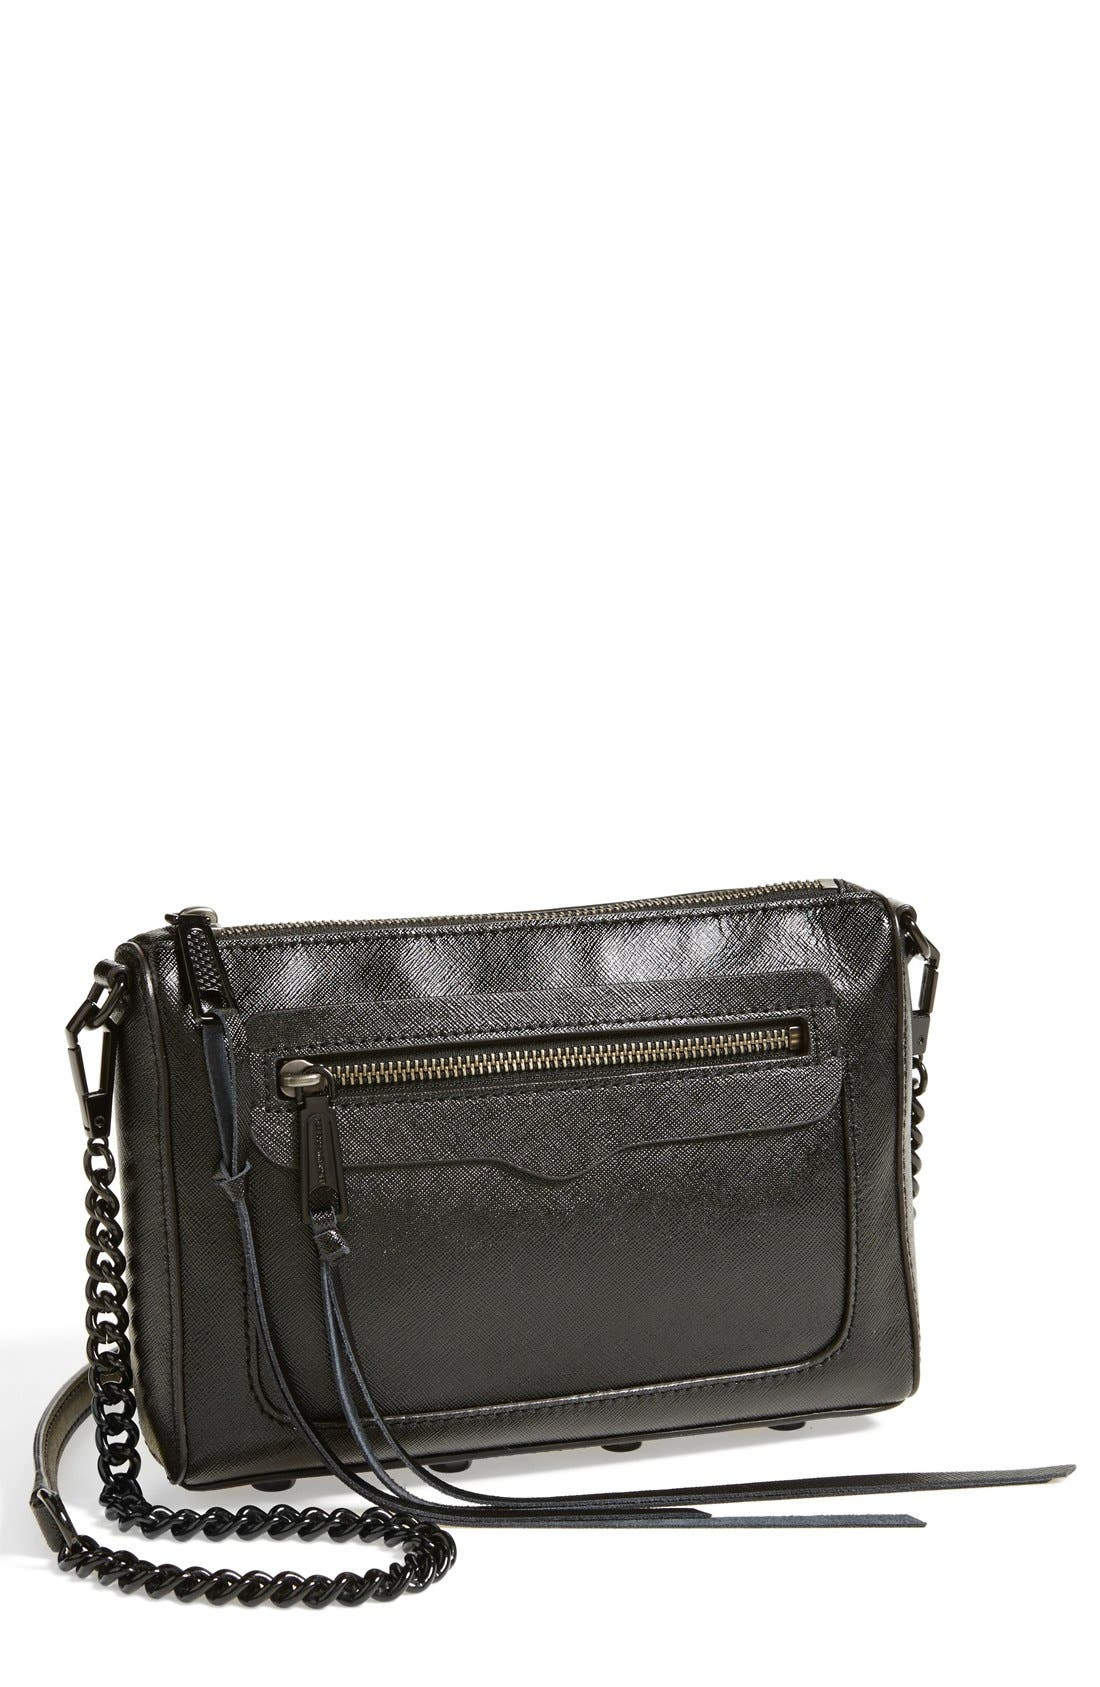 'Avery' Crossbody Bag,                         Main,                         color, 001